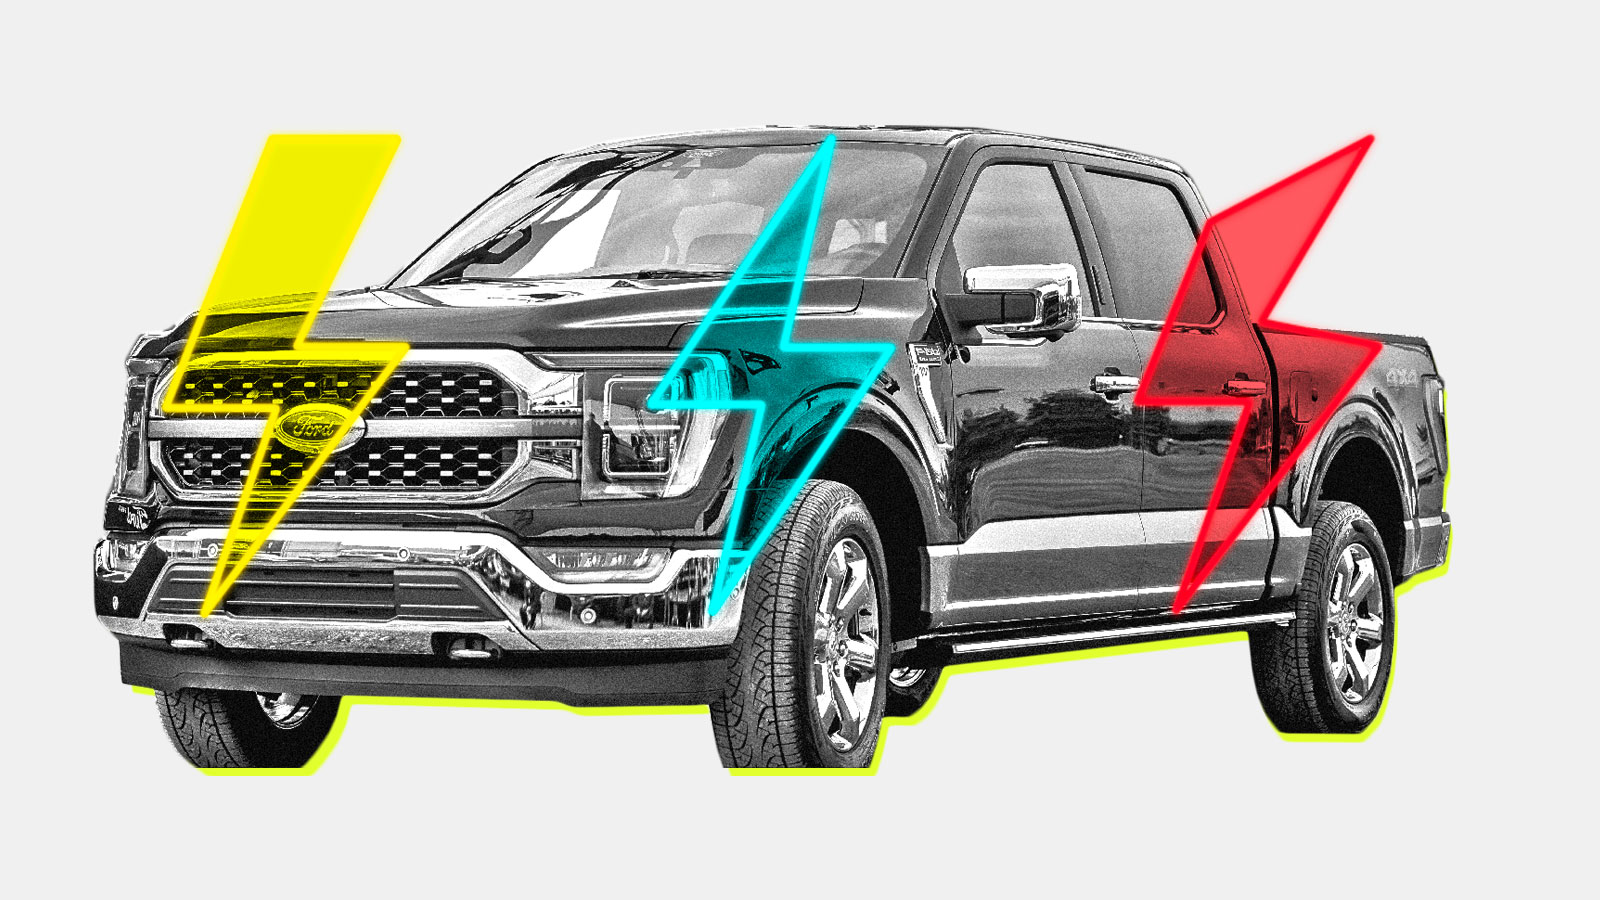 A photo collage of a Ford F-150 truck with colorful lightning bolts on top of it